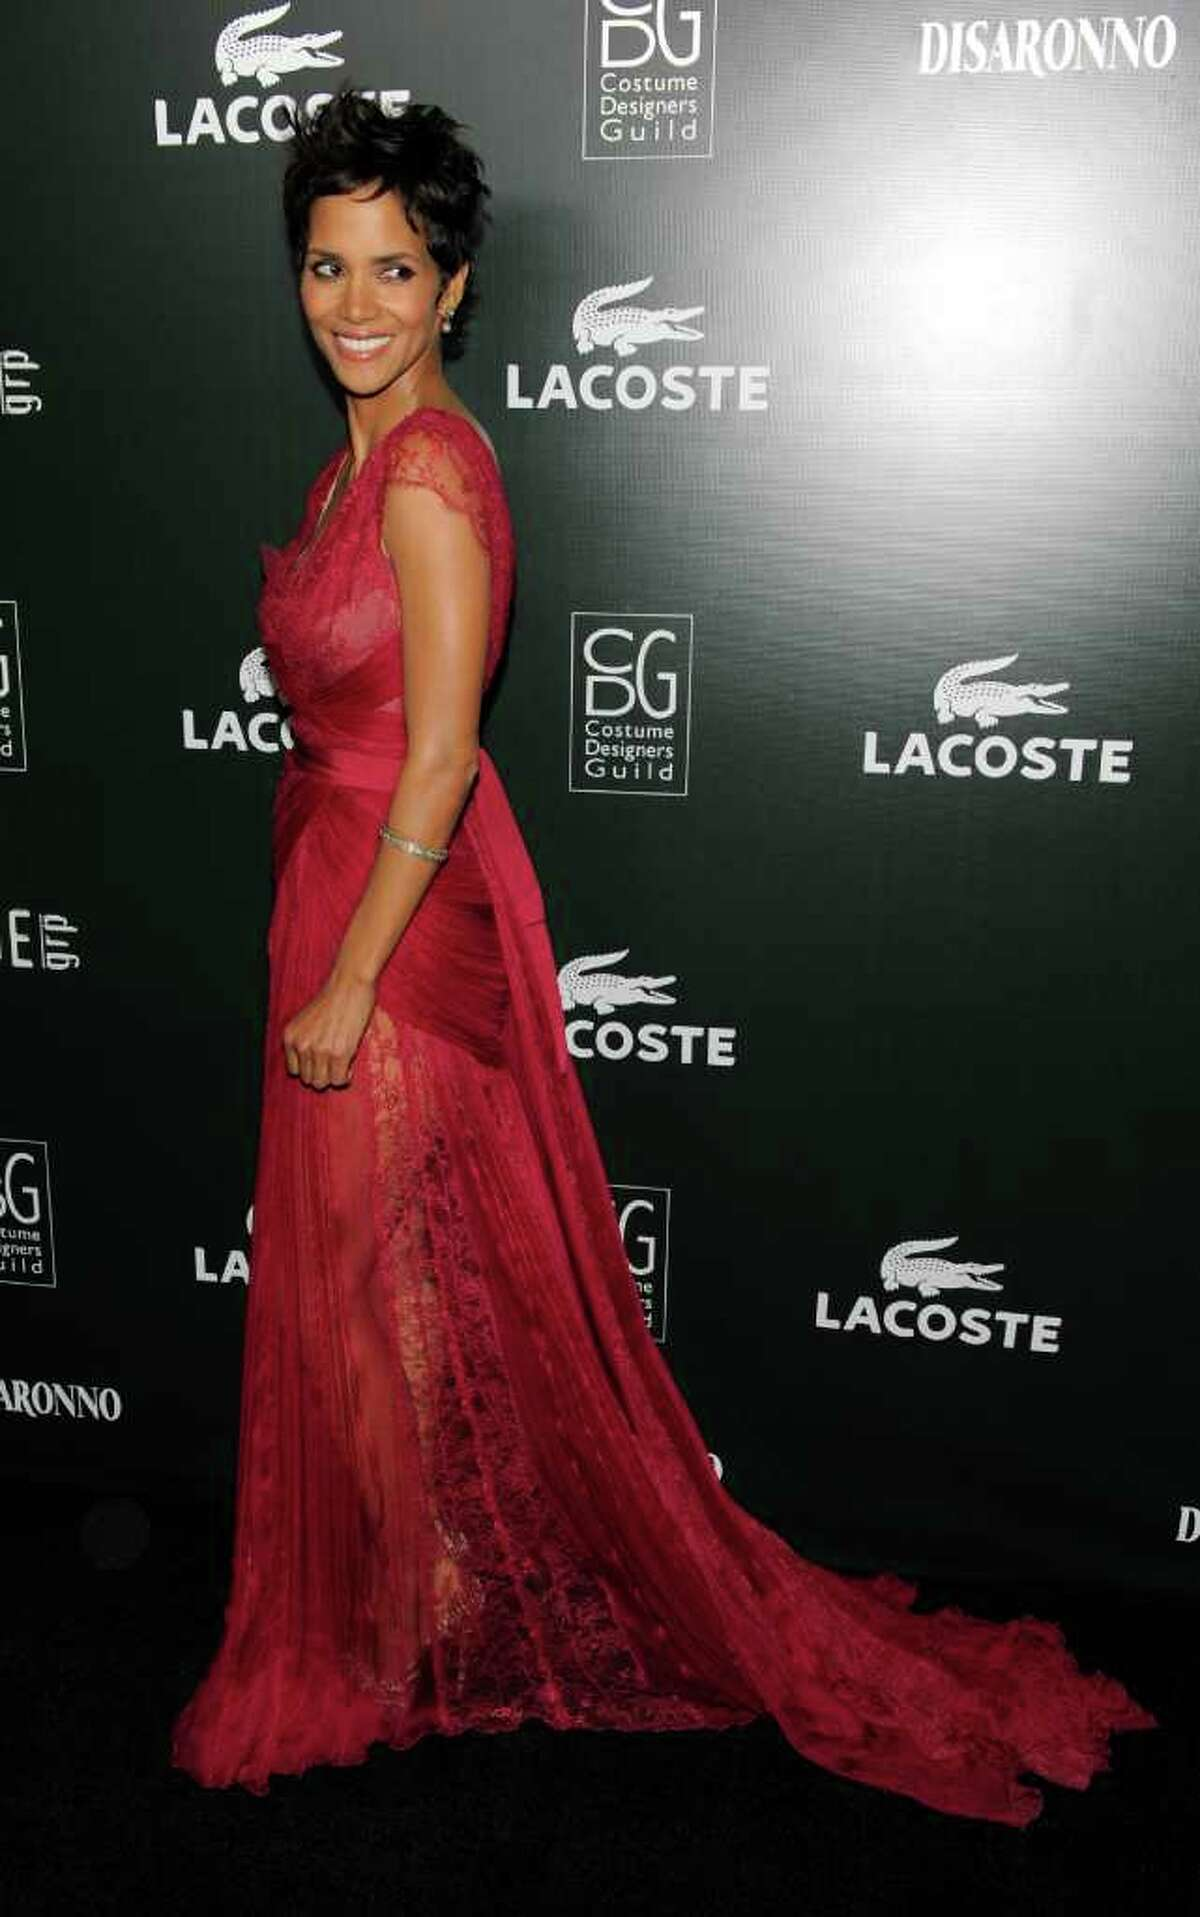 Lacoste Spotlight Award recipient Halle Berry turns back for photographers at the 13th Annual Costume Designers Guild Awards in Beverly Hills, Calif., Tuesday, Feb. 22, 2011.